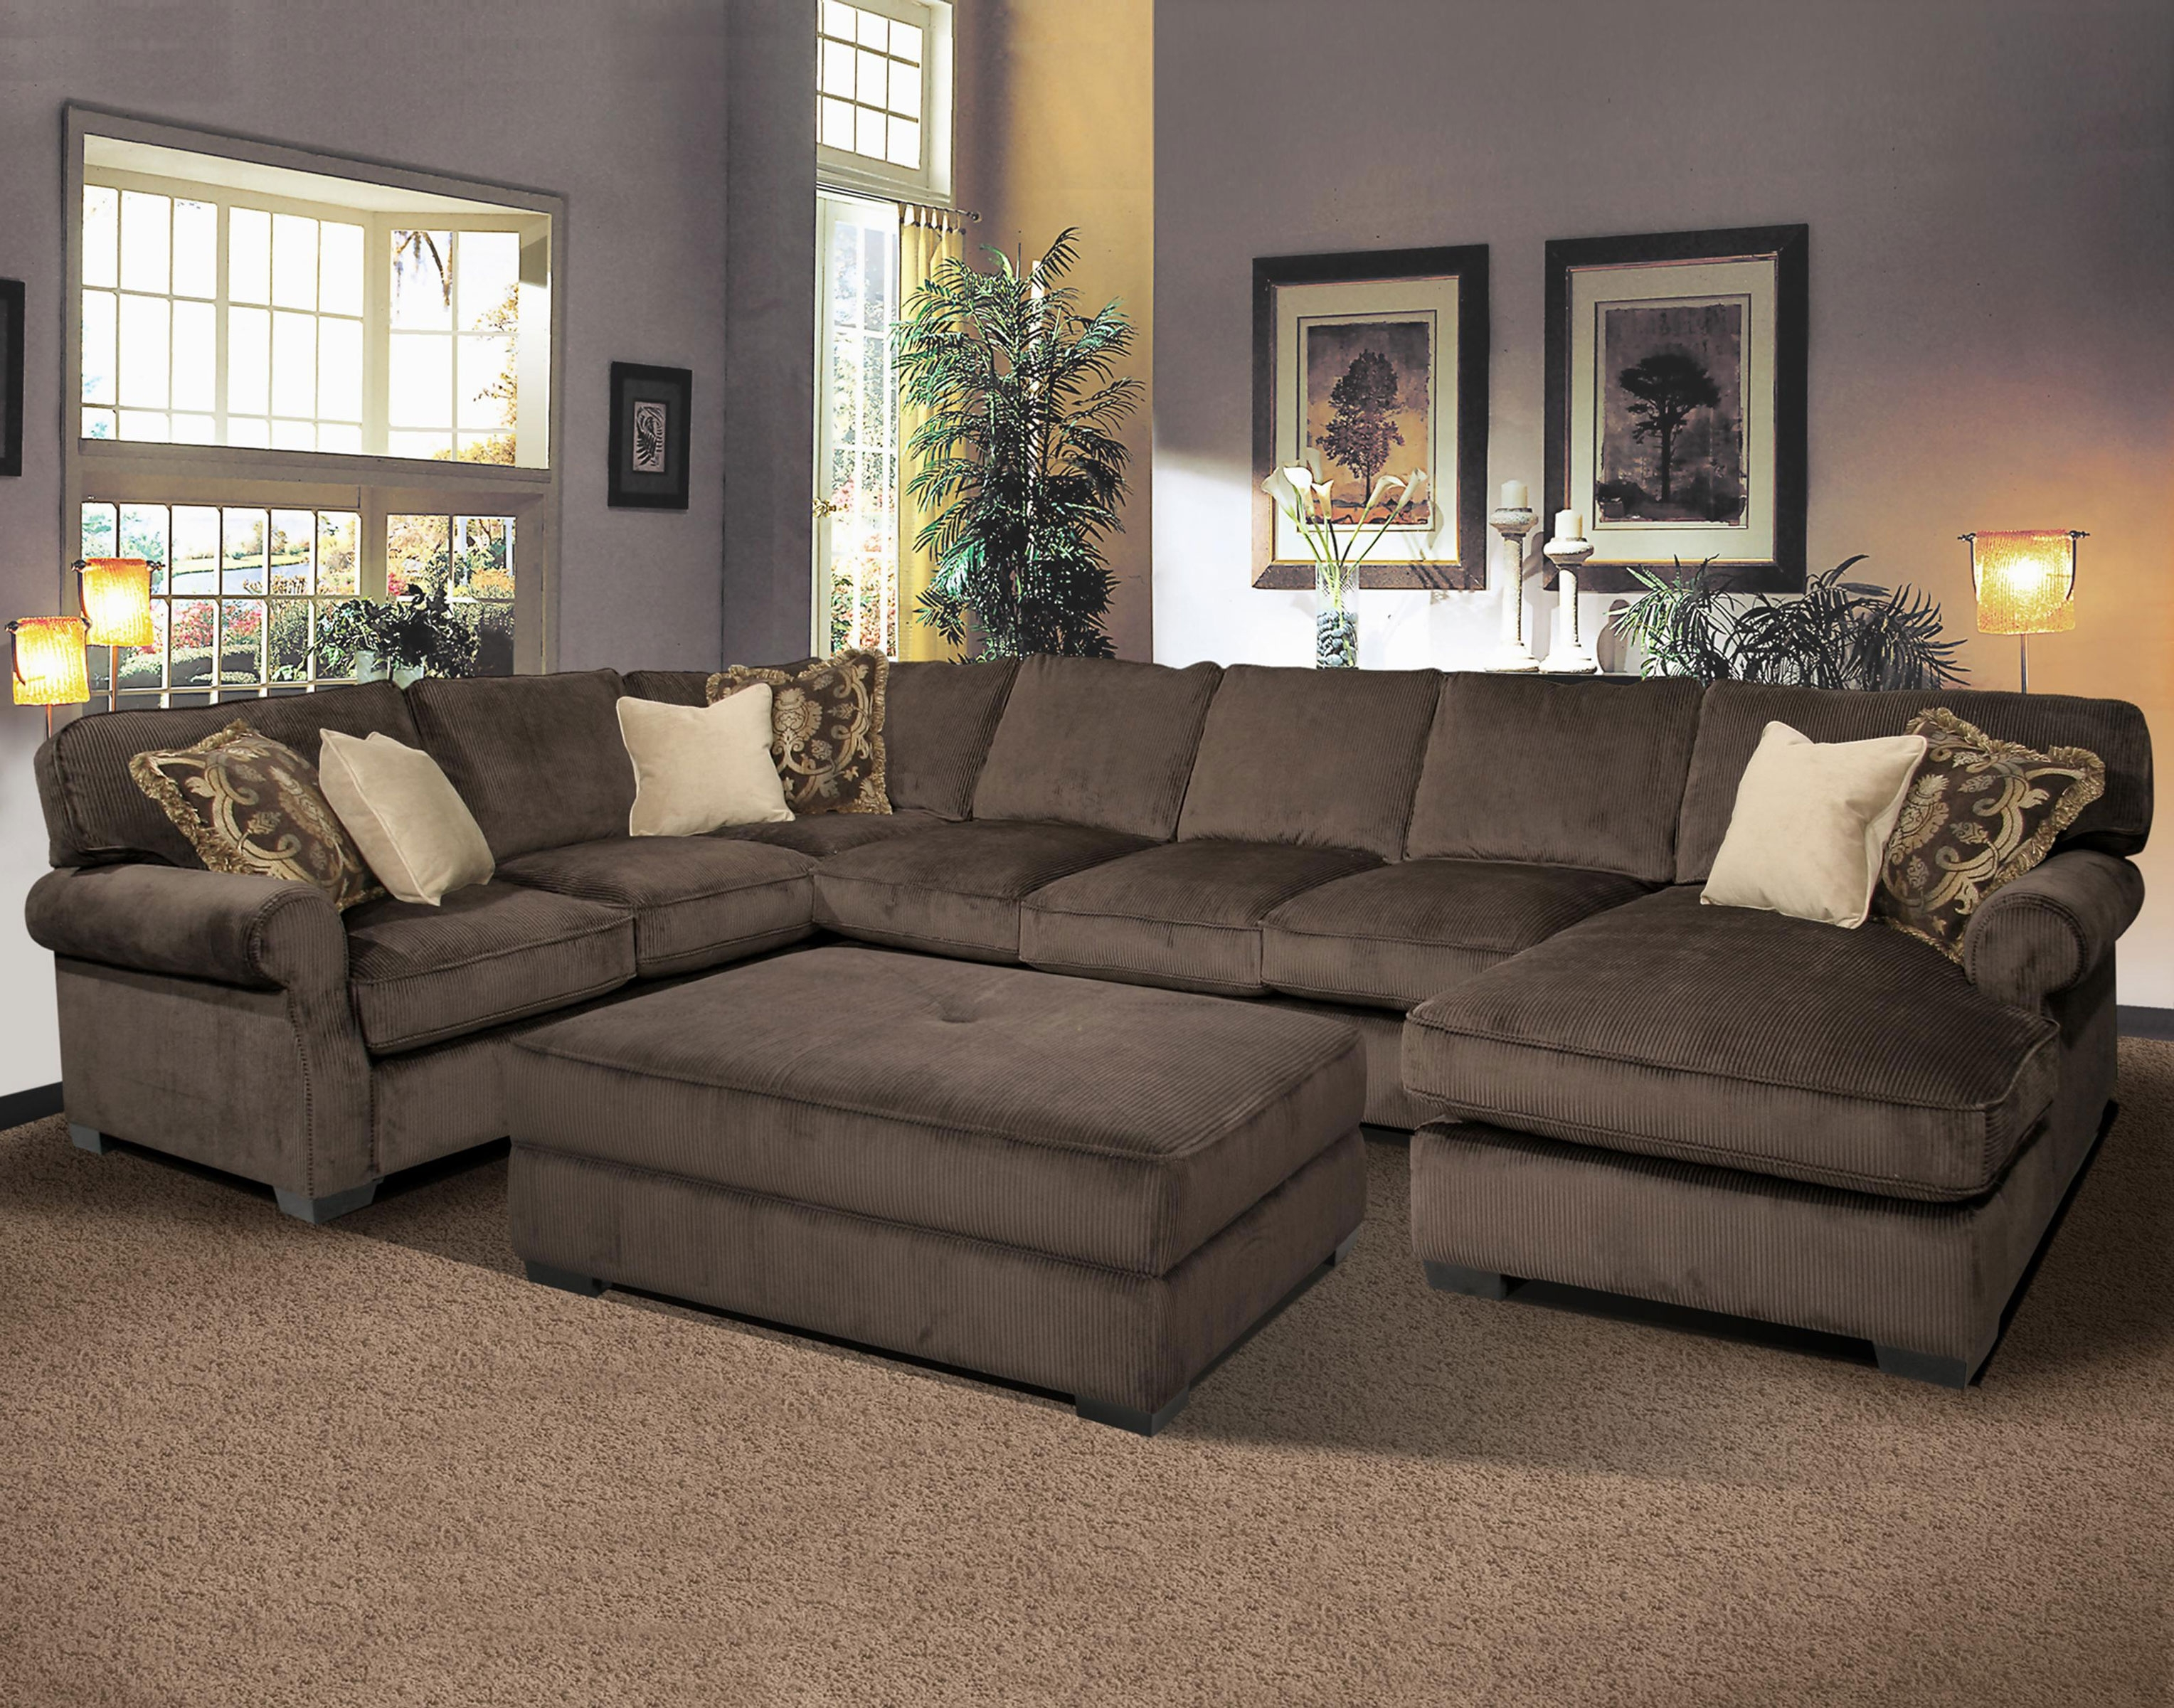 Grande Prairie Ab Sectional Sofas Pertaining To Latest Sectional Sofa: Sectional Sofas Tulsa Sofas Tulsa Ok, Sectional (View 8 of 20)